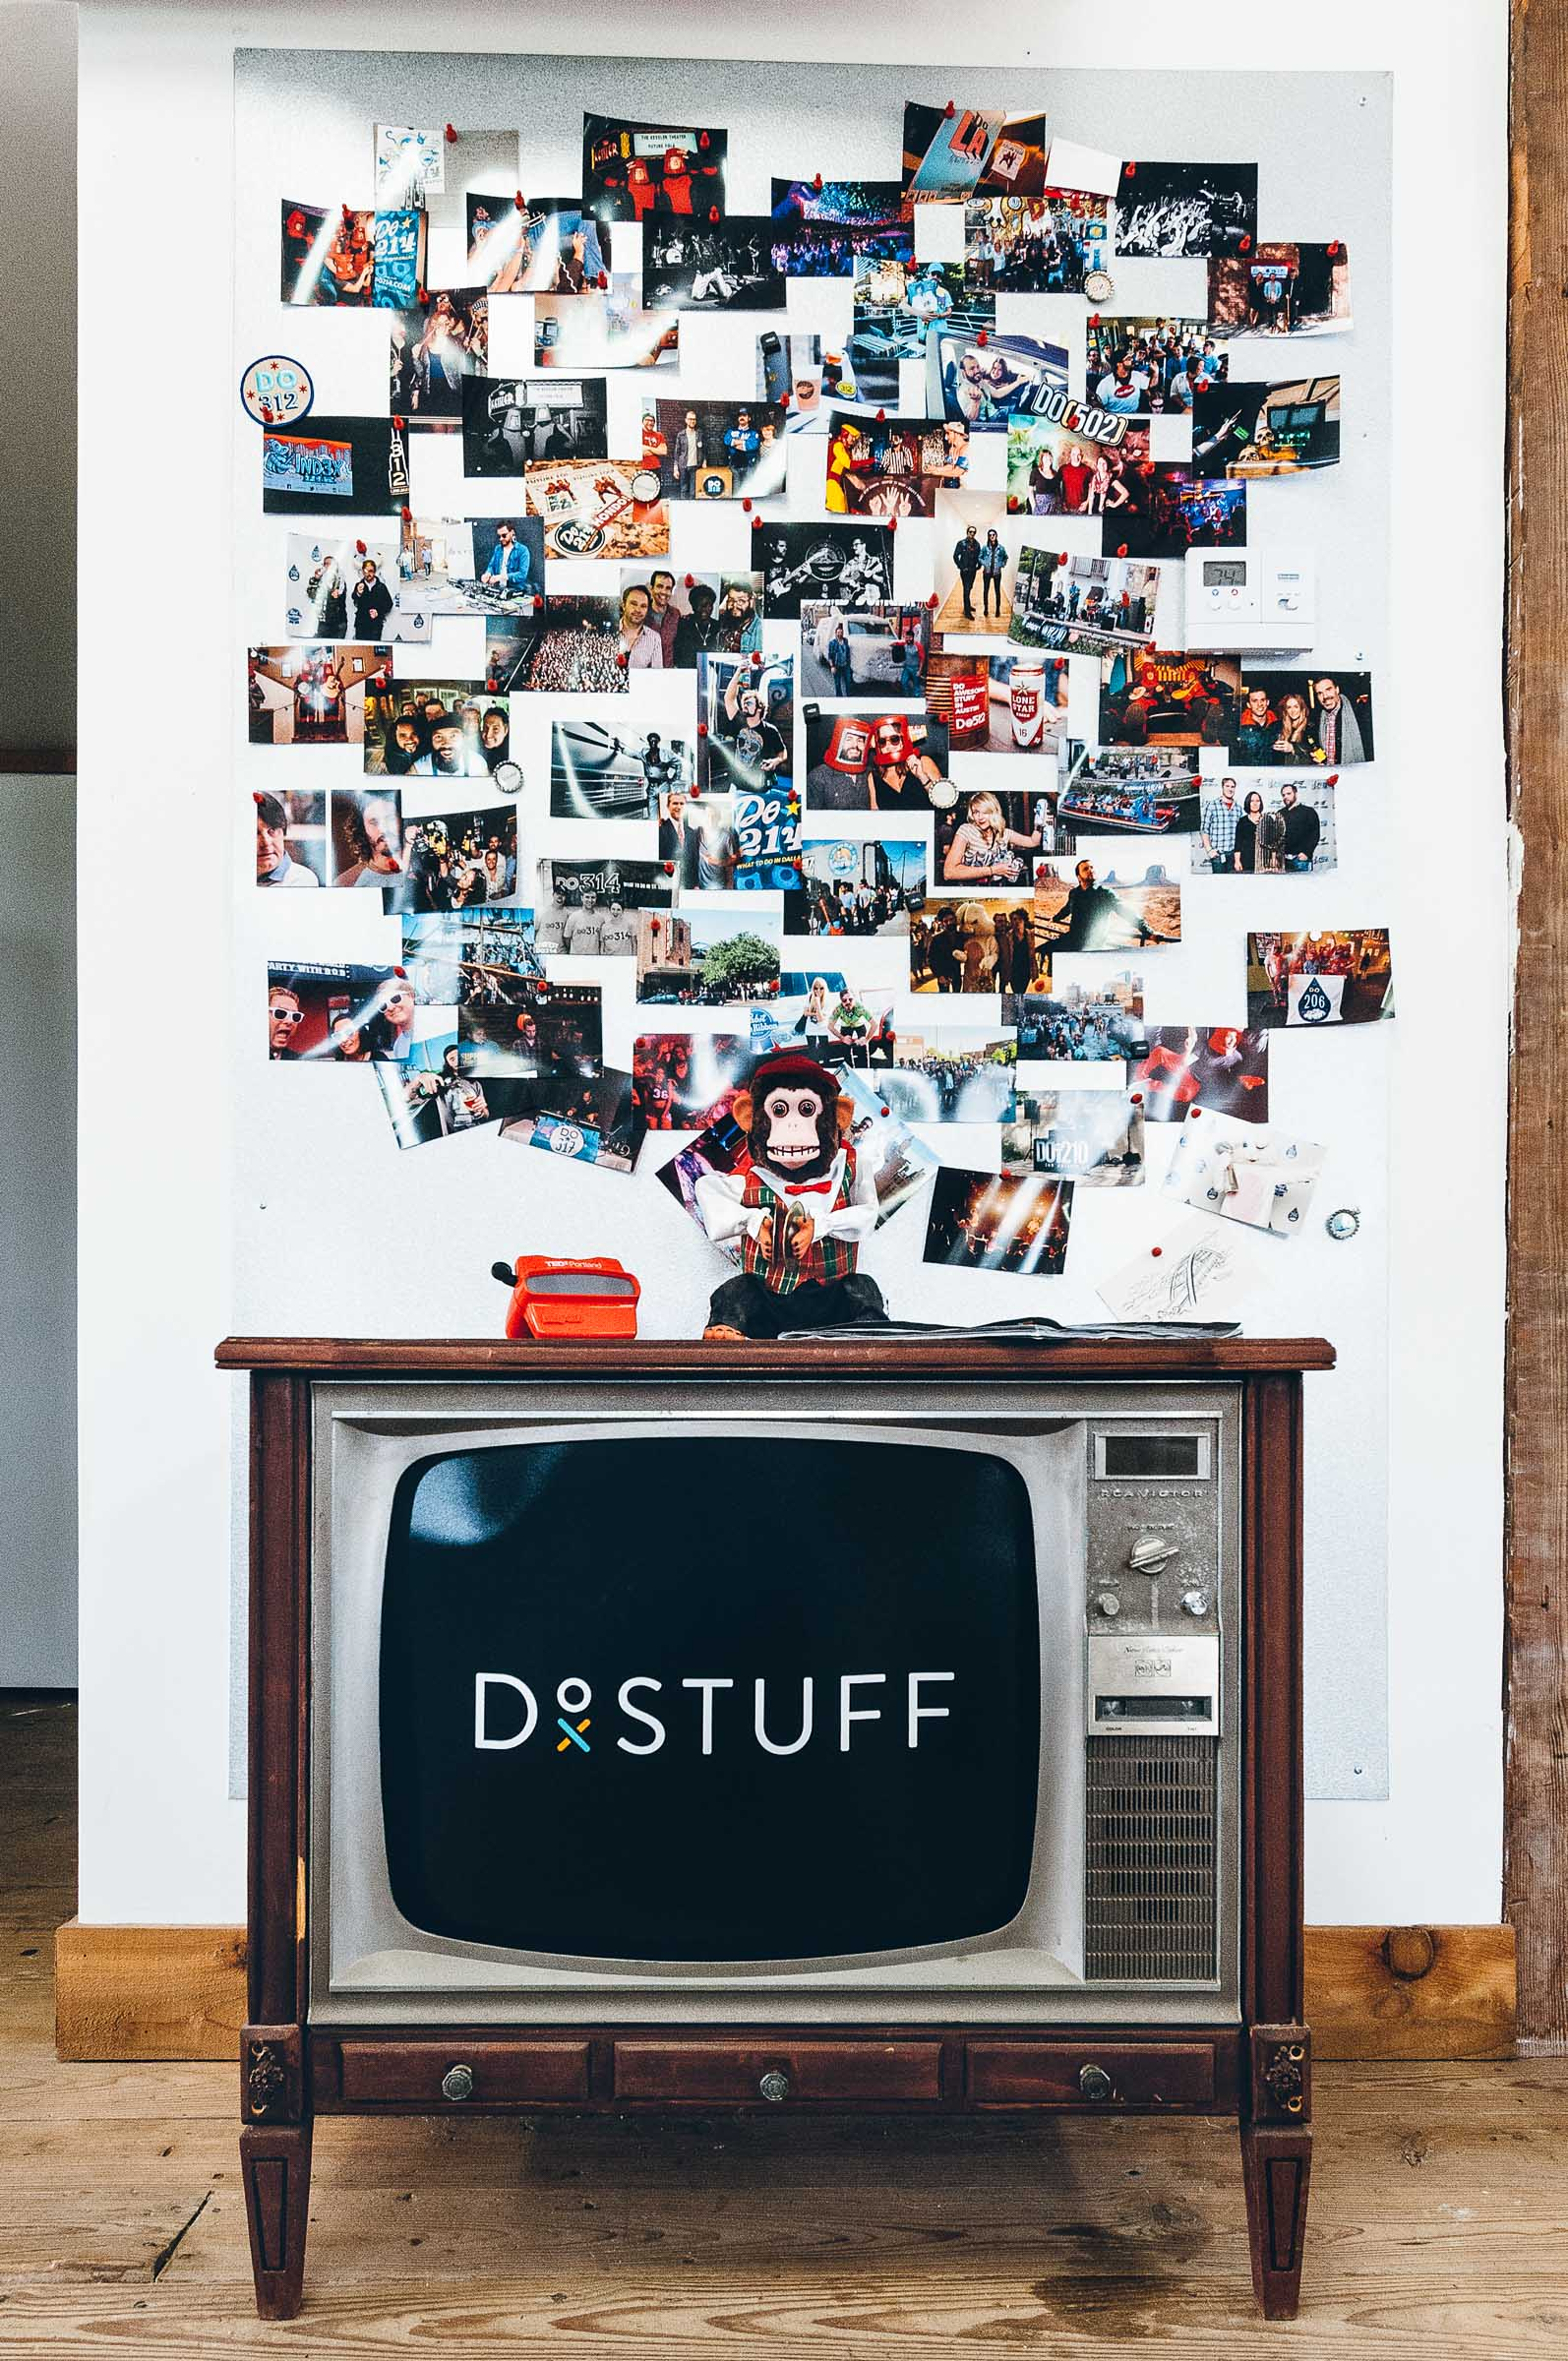 A toy monkey, a vintage TV, and staff photographs - work culture at Do512